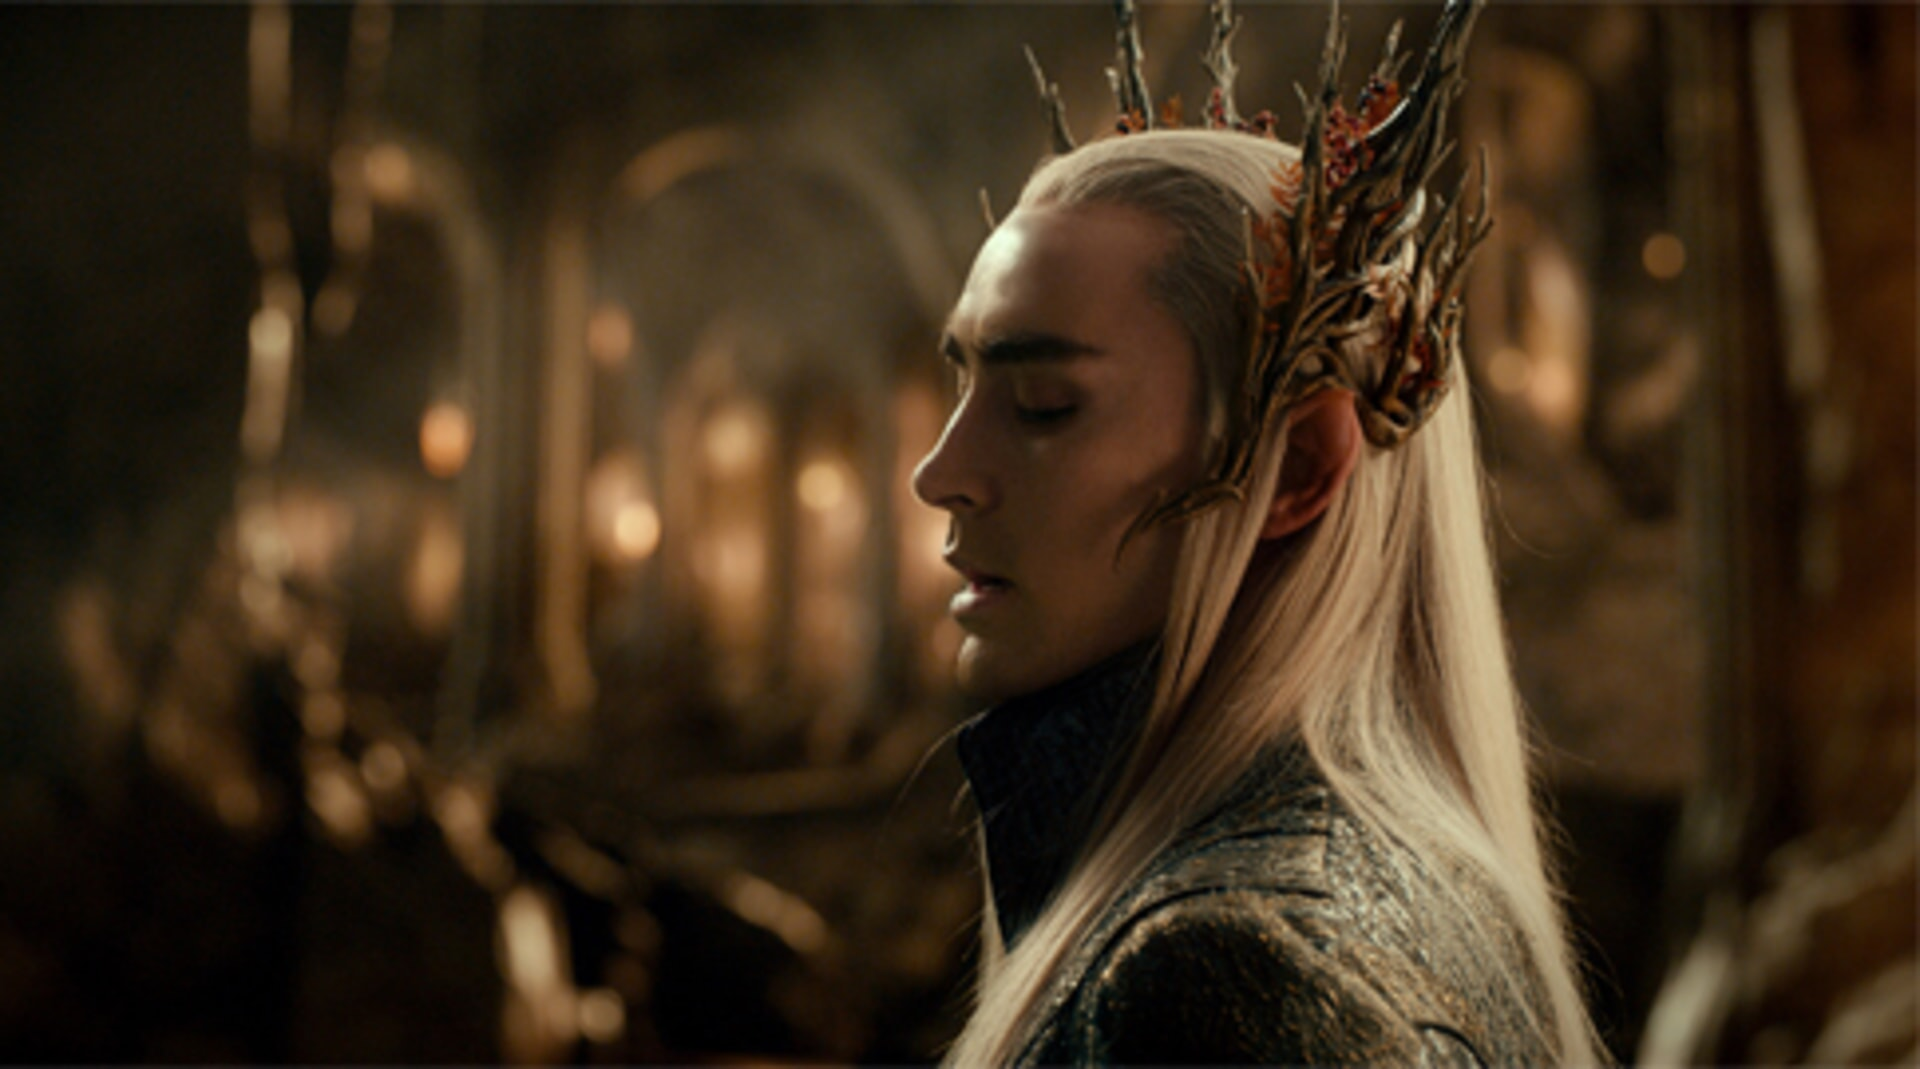 The Hobbit: The Desolation of Smaug - Image 23